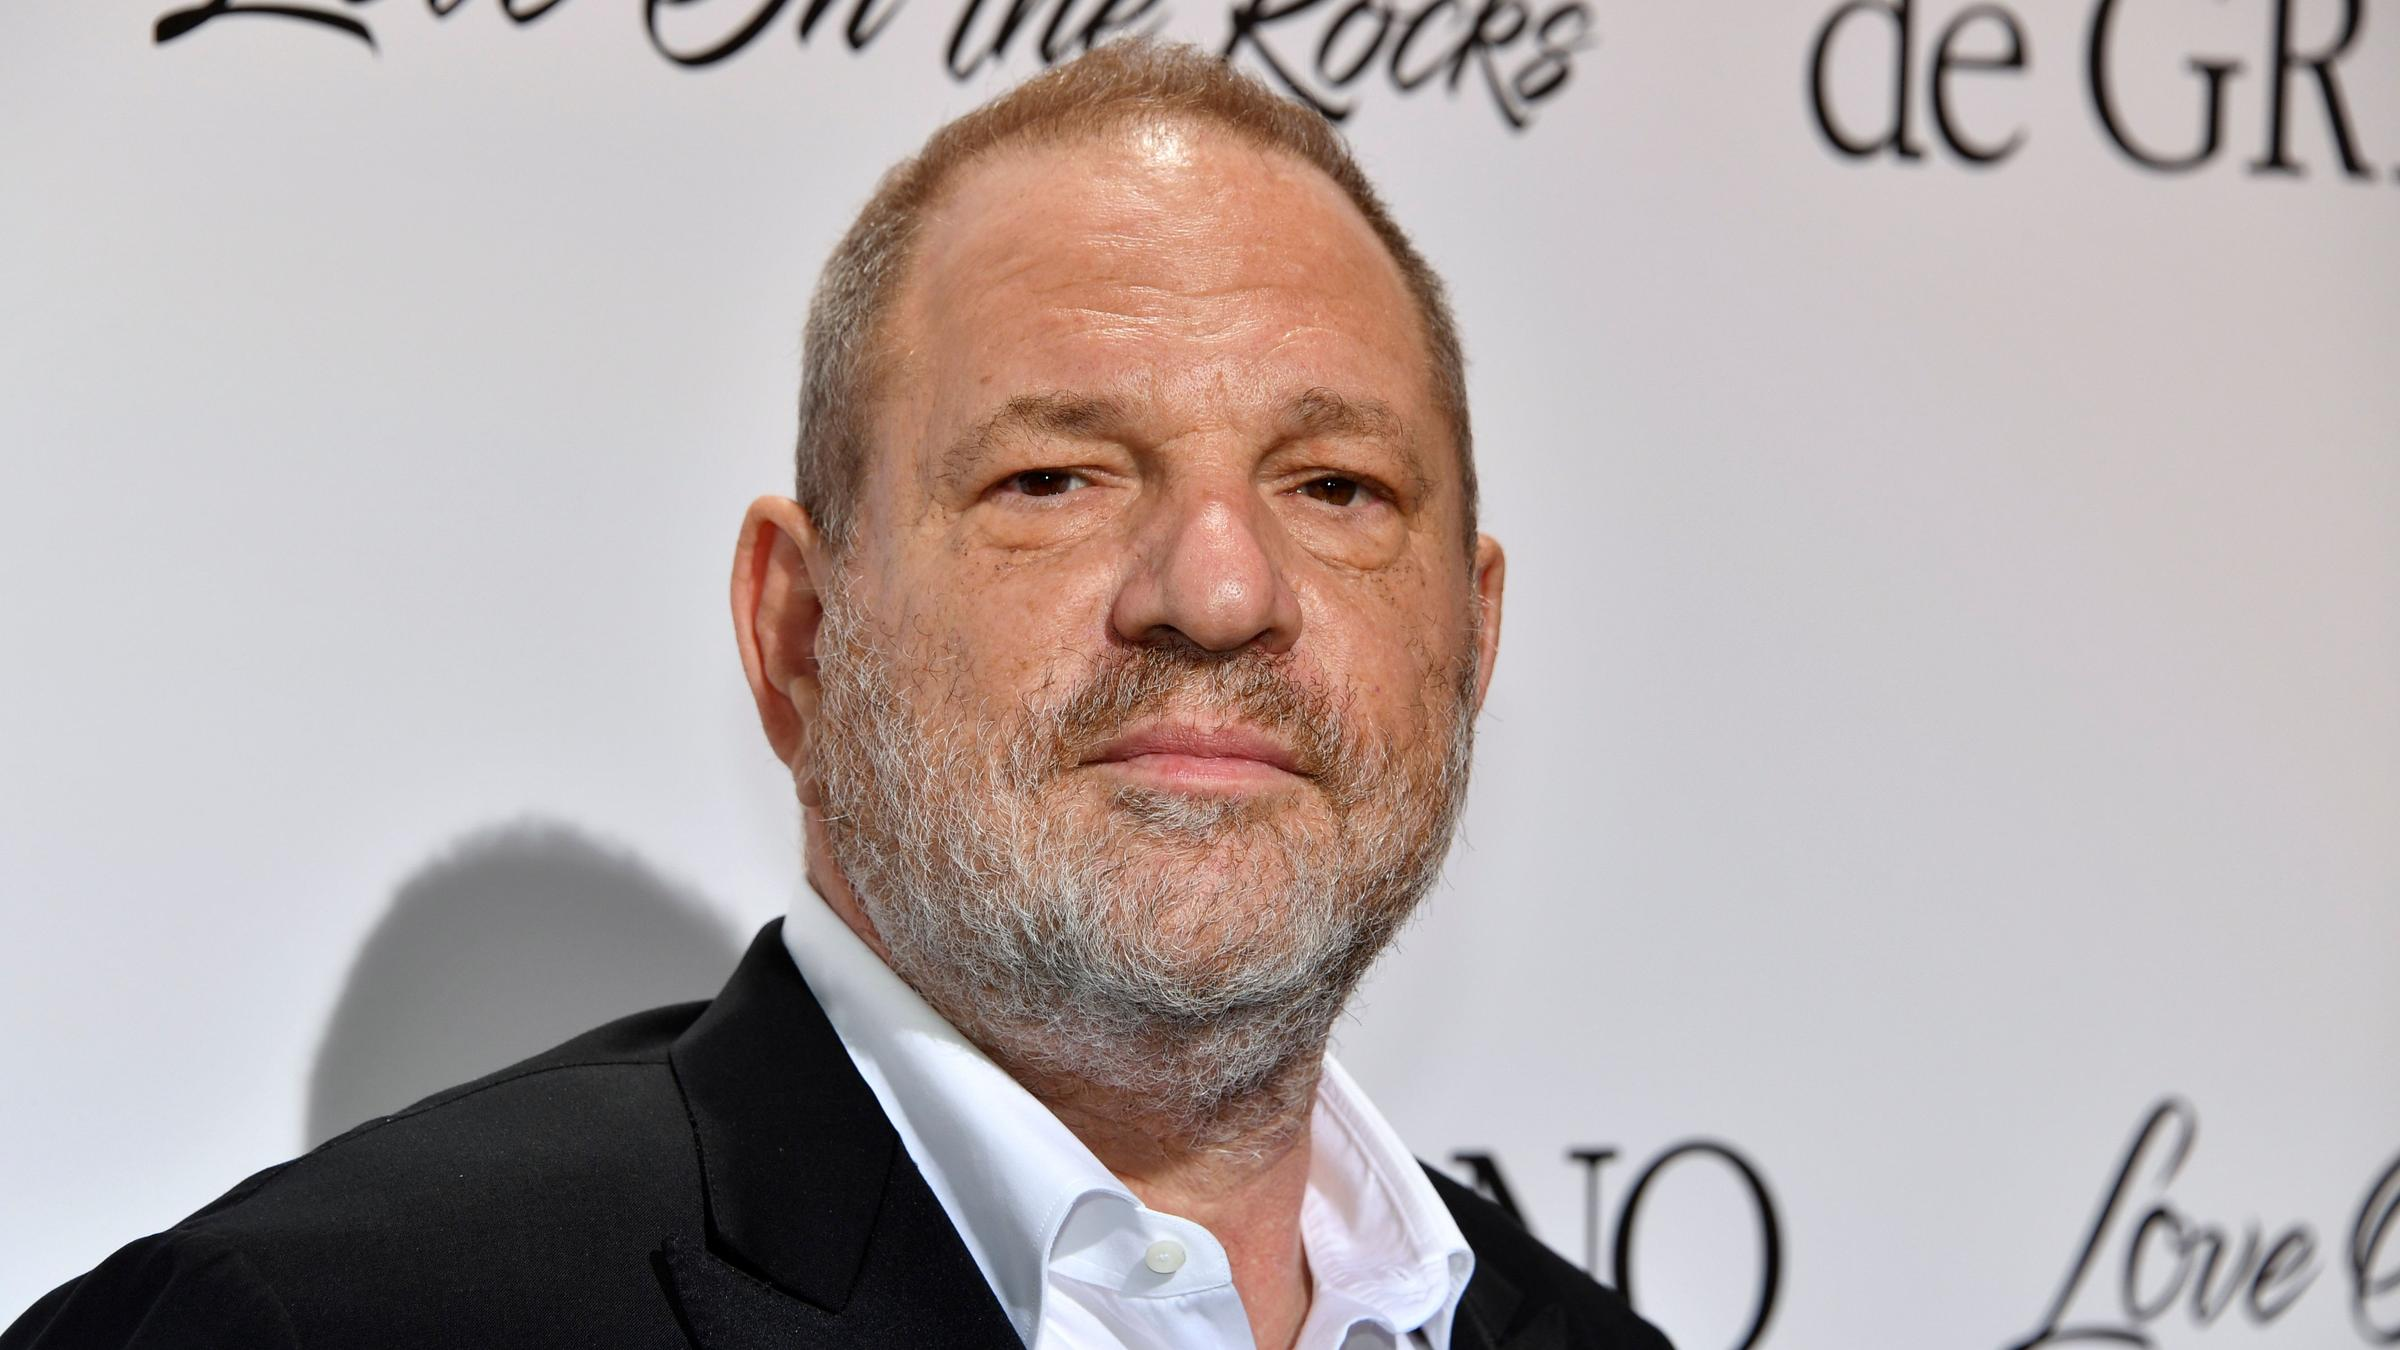 NY attorney general files lawsuit against Harvey Weinstein